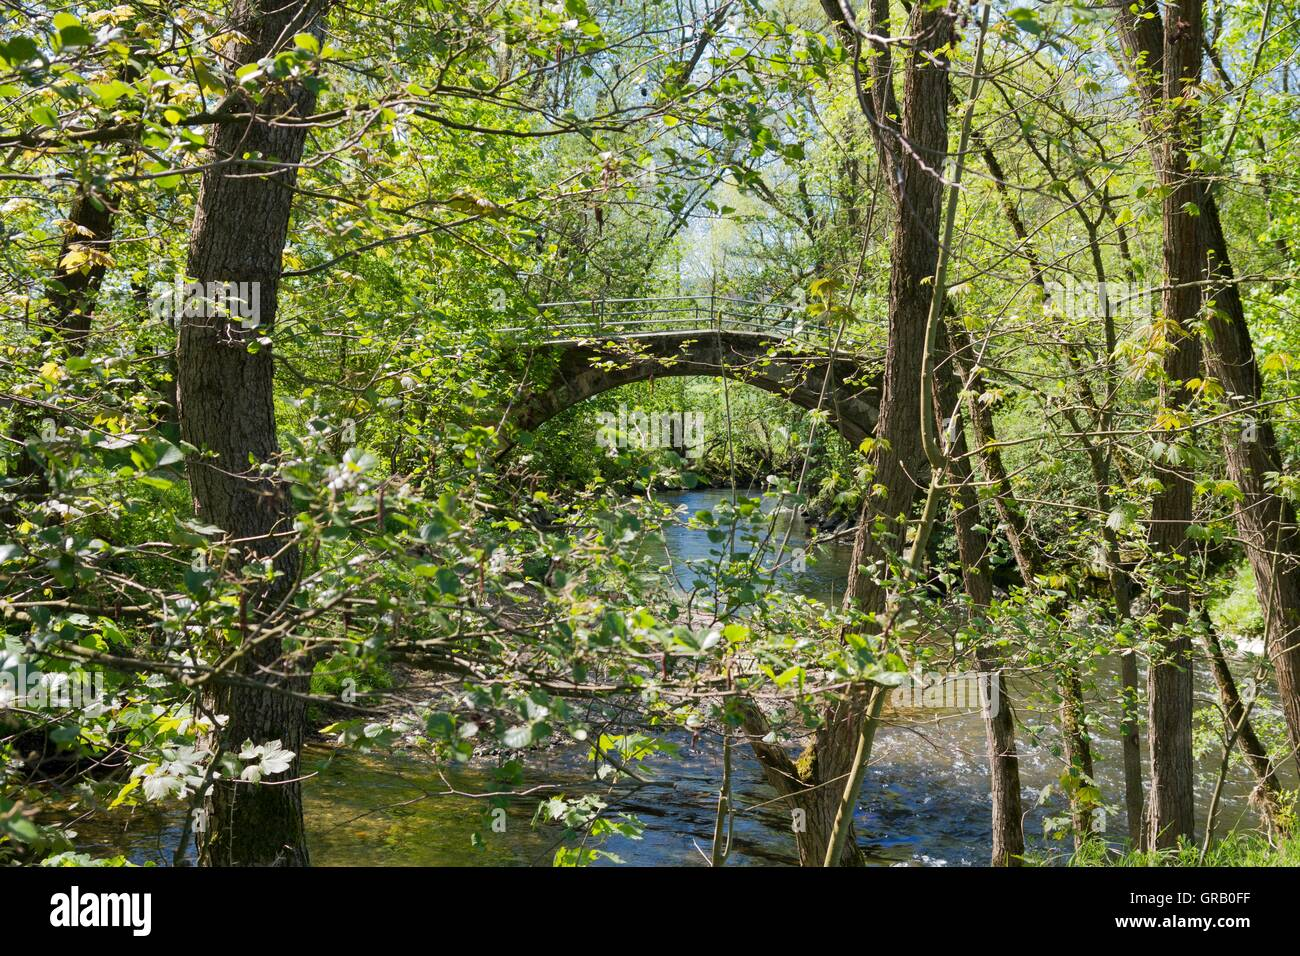 Restored Historical Arch Bridge From The 17Th Century At The Beginning Of The Baille-Maille Lime Avenue - Stock Image